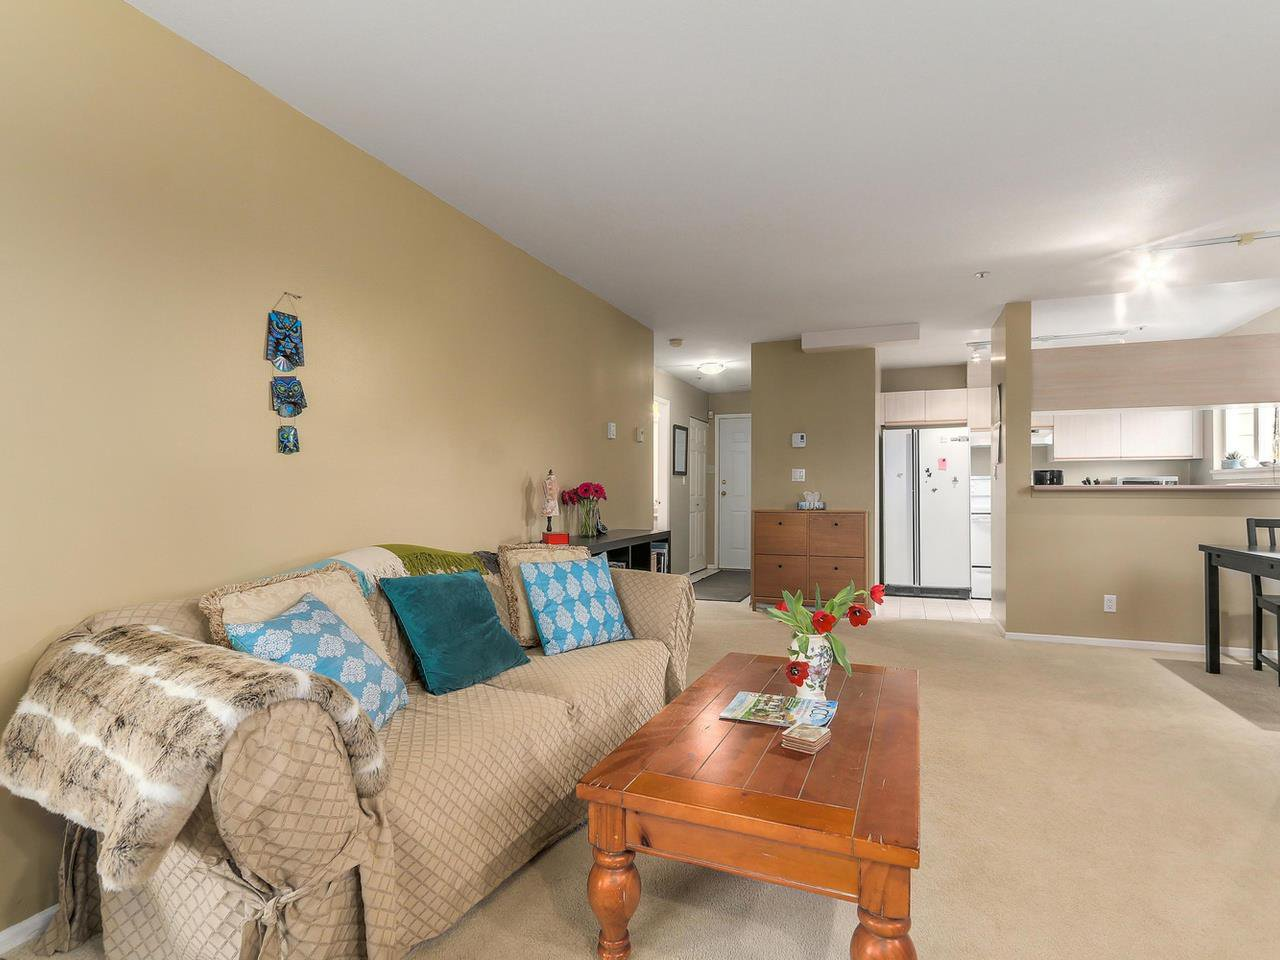 """Photo 5: Photos: 301 1623 E 2ND Avenue in Vancouver: Grandview VE Condo for sale in """"GRANDVIEW MANOR"""" (Vancouver East)  : MLS®# R2122830"""